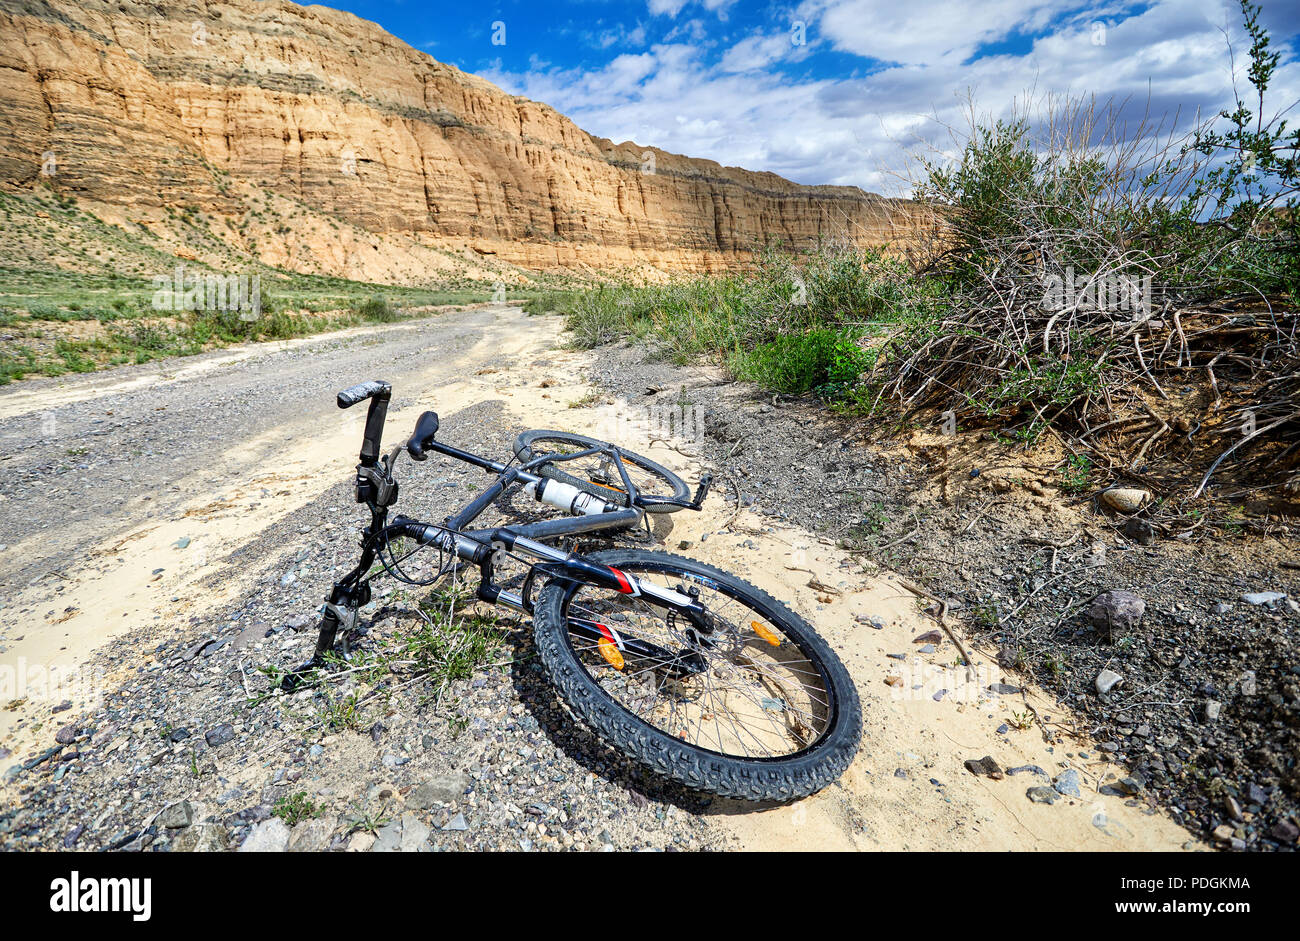 Black mountain bike at country road in the desert canyon. Extreme Sport Concept. - Stock Image